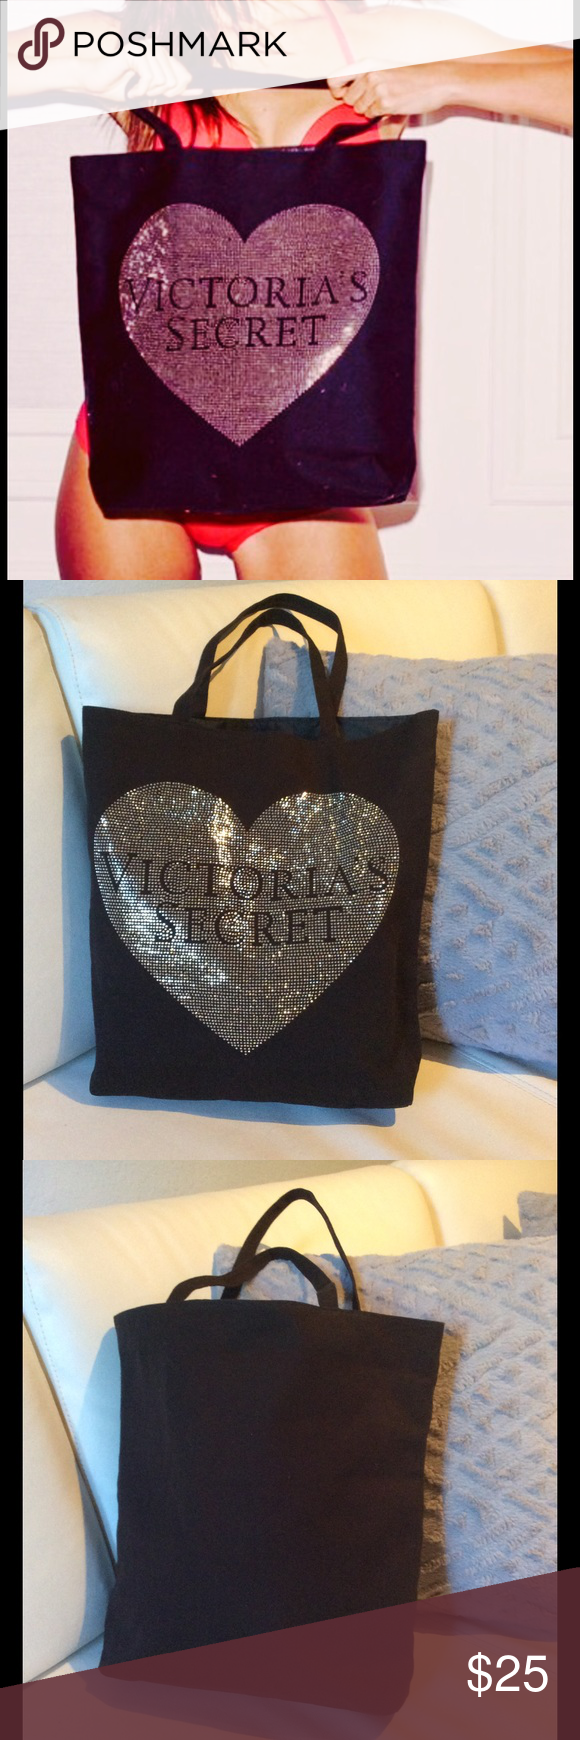 💕Victorias Secret Black Bling Heart Bag Angel 💕 Victorias Secret Black Bling Heart Tote Bag Angel Bags Totes